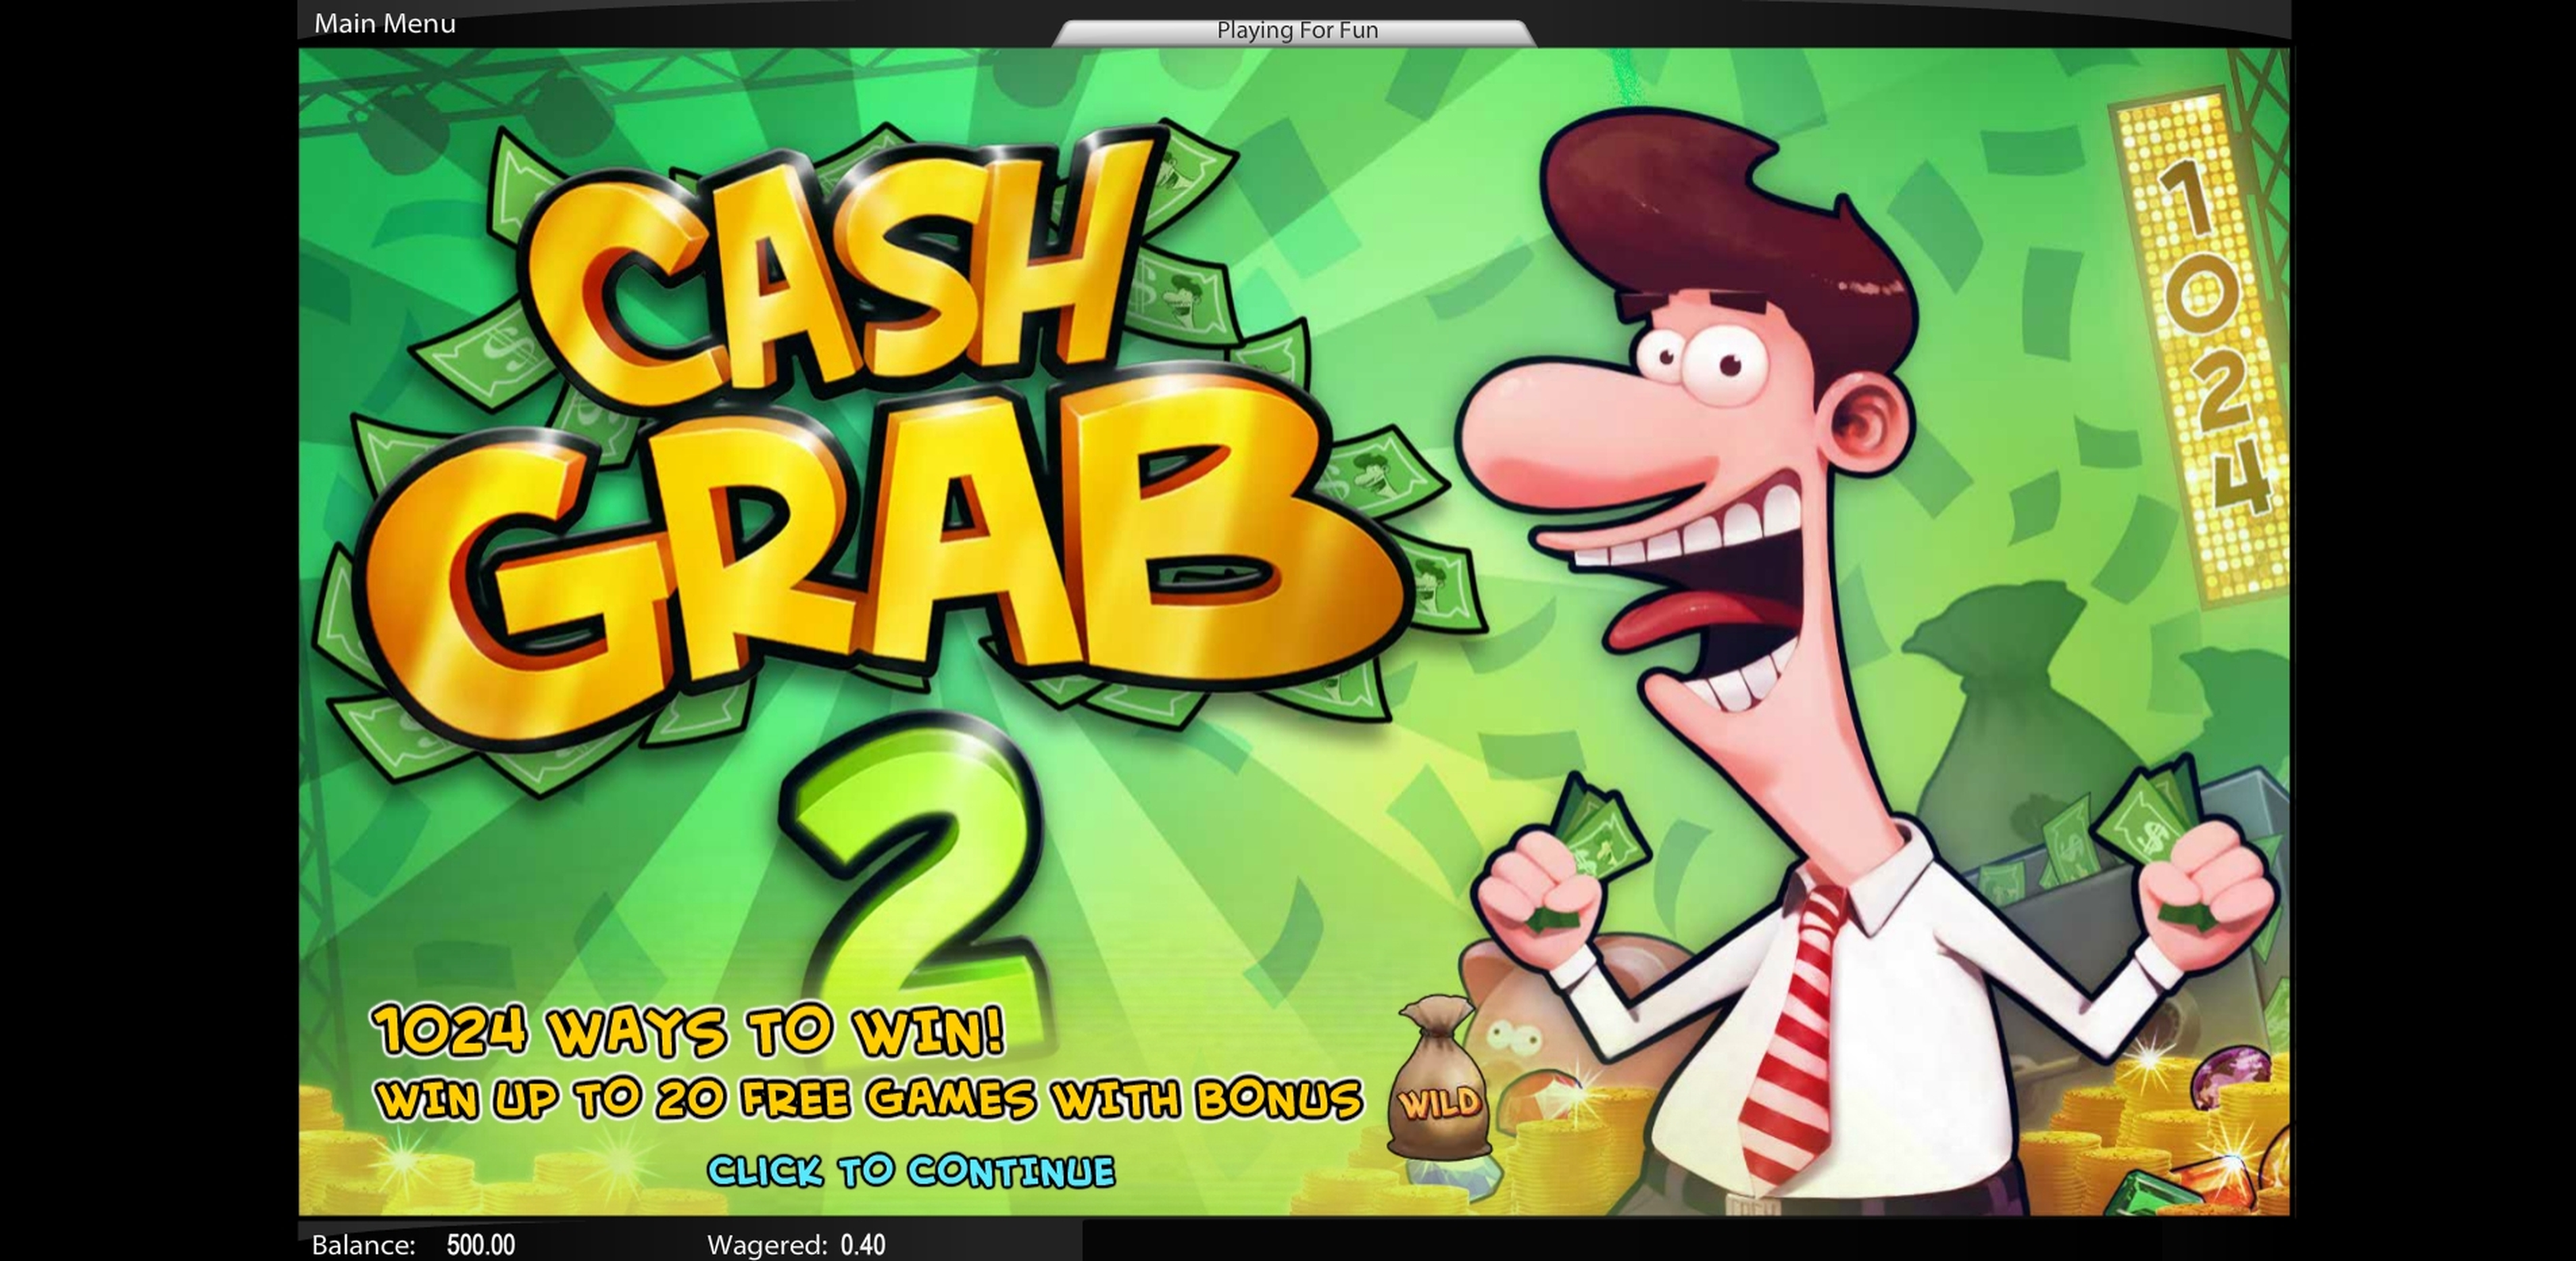 Play Cash Grab 2 Free Casino Slot Game by Top Trend Gaming